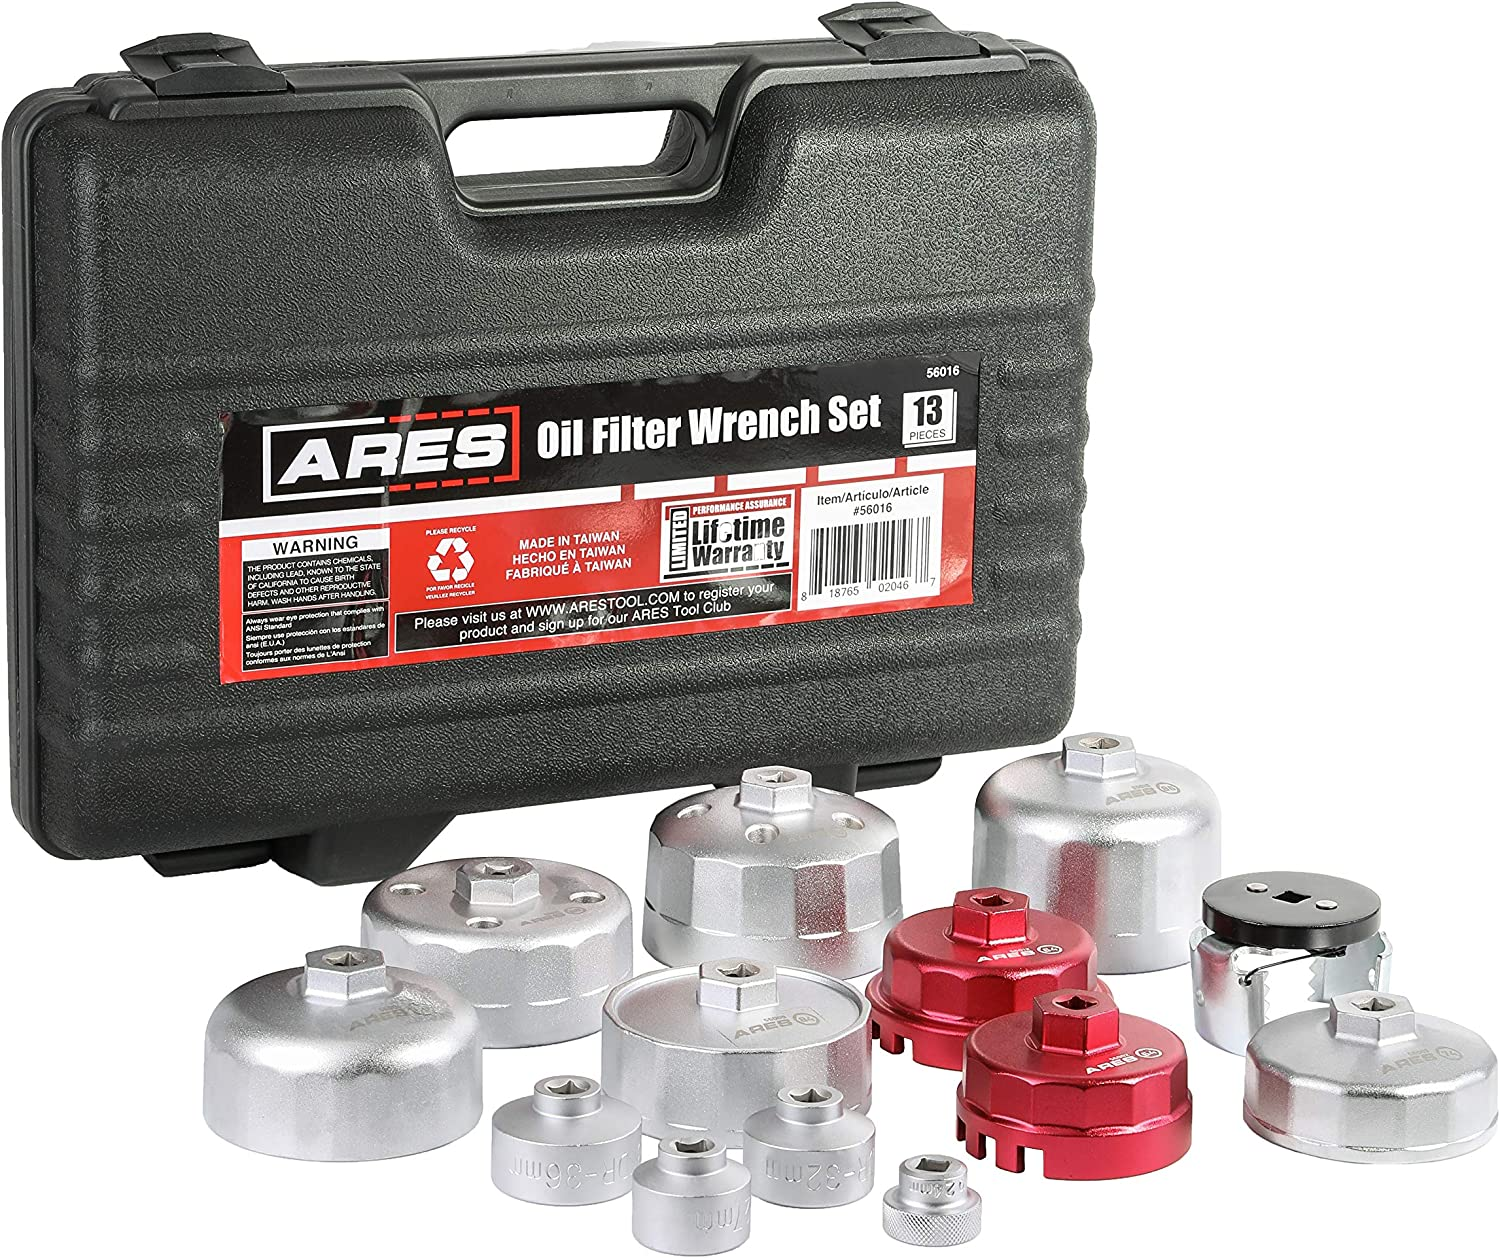 Easily Remove Oil Filters on Most Vehicles Convenient Storage Case Included ARES 56016-13-Piece Oil Filter Wrench Set 3//8-Inch Drive